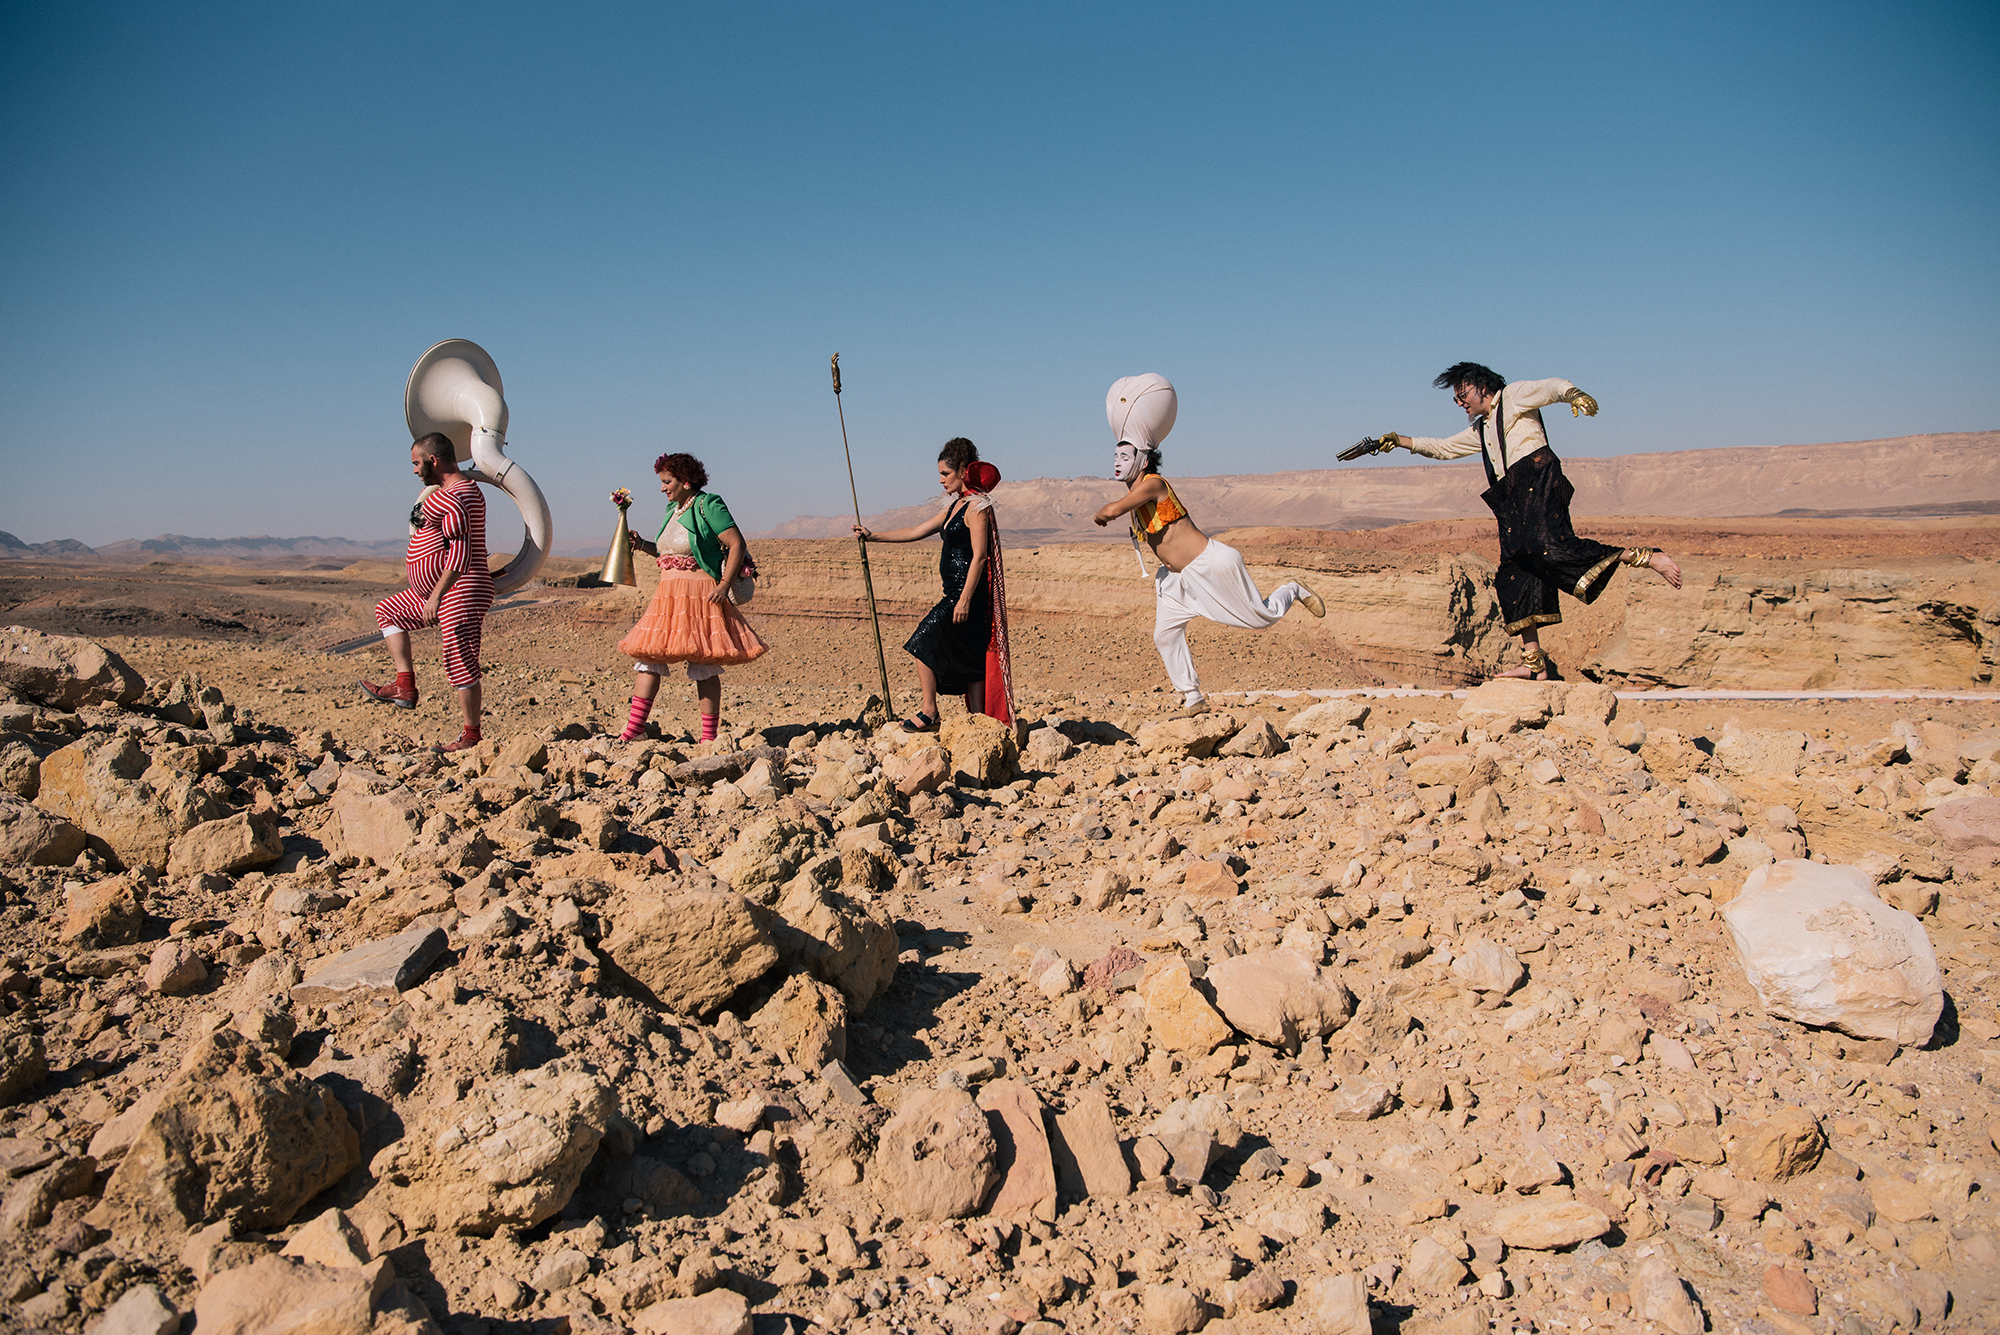 Arik Shraga photographs the epitome of a traveling circus with DAVAI Theater Group as they hop over sandy rocks in the desert